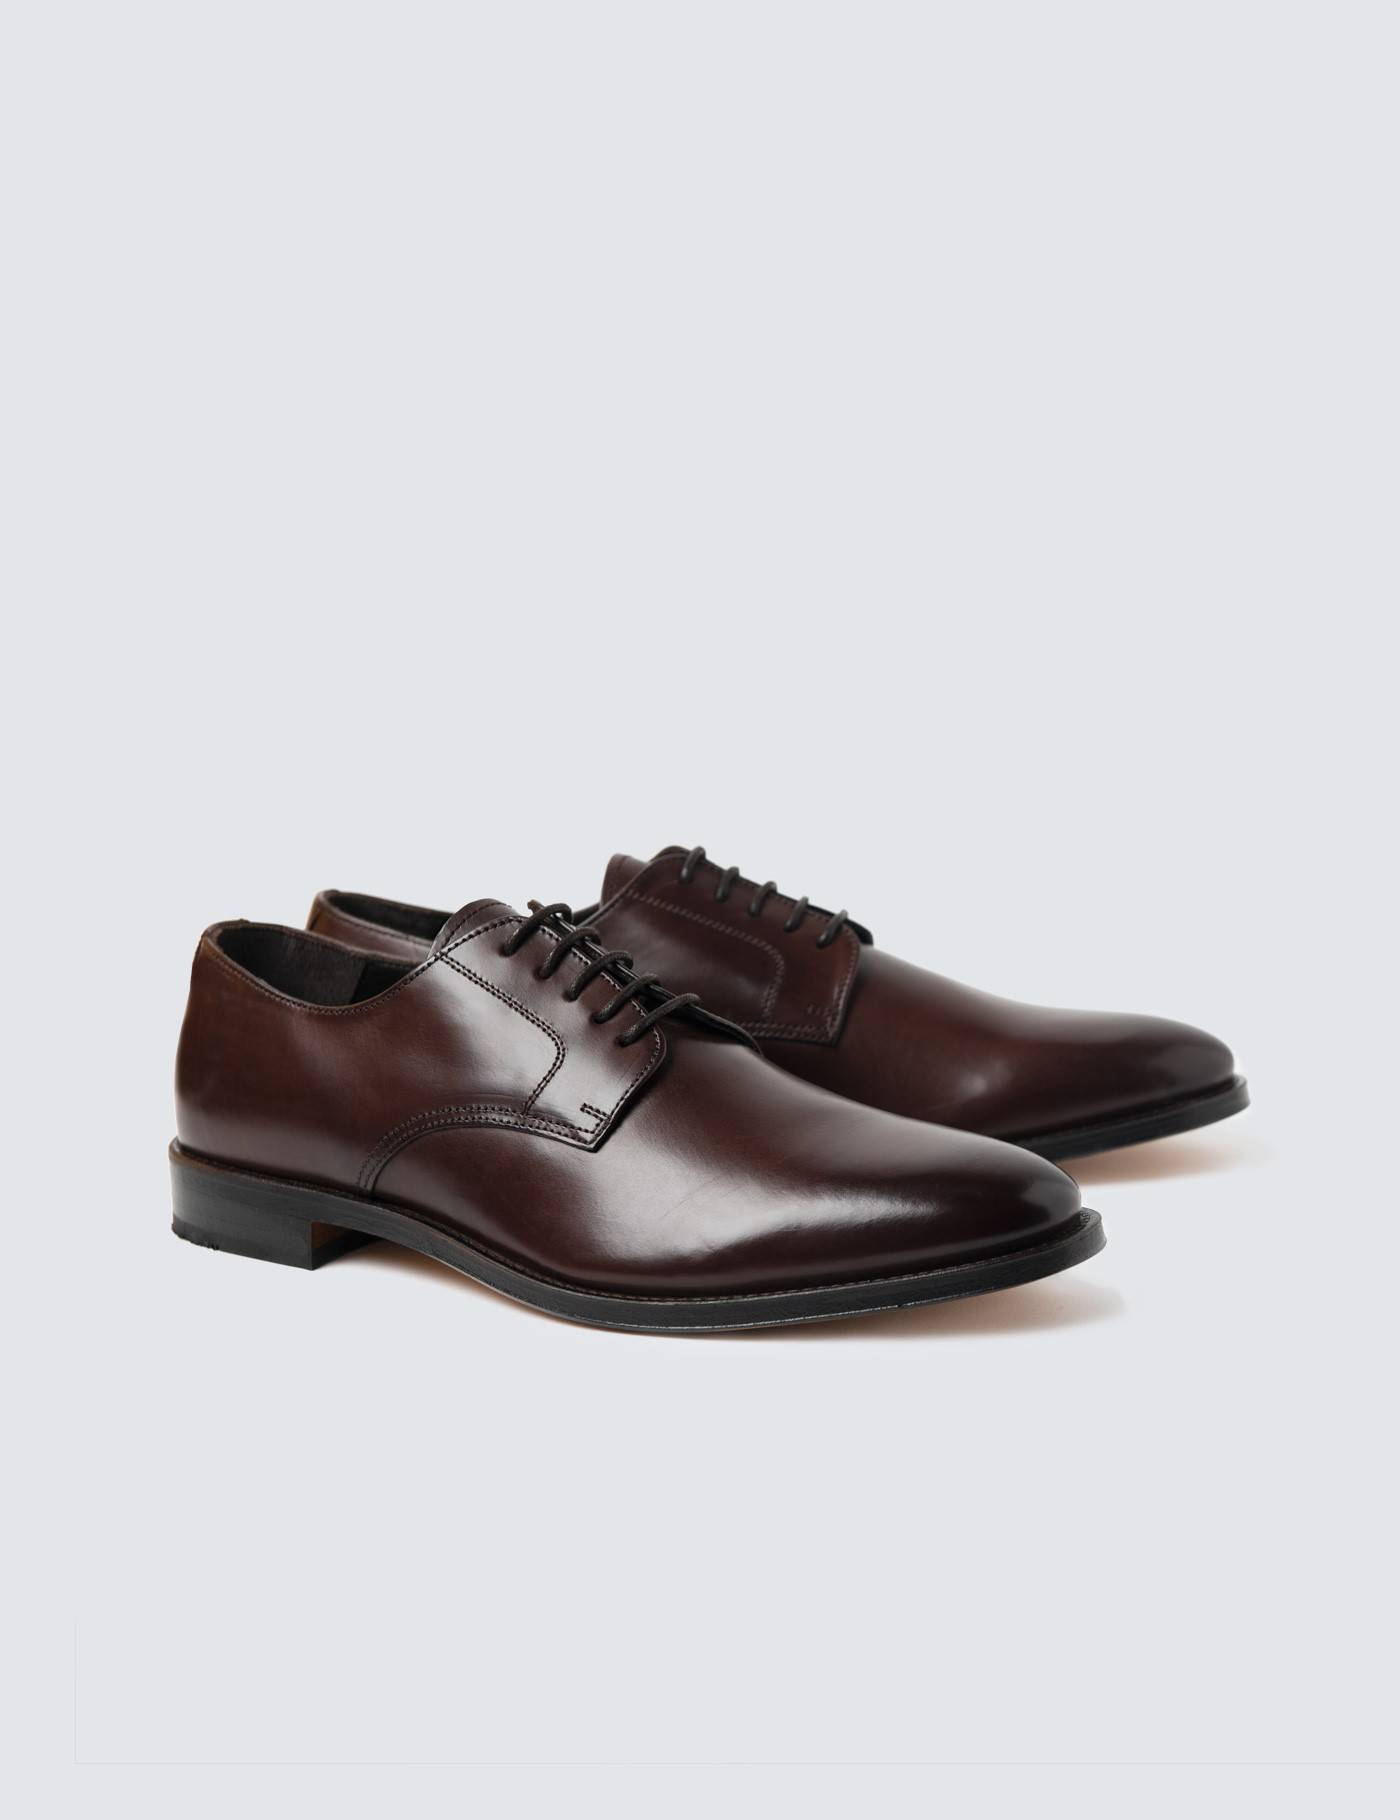 Hawes & Curtis Men's Leather Plain Derby Shoes in Brown Size 10 Hawes & Curtis